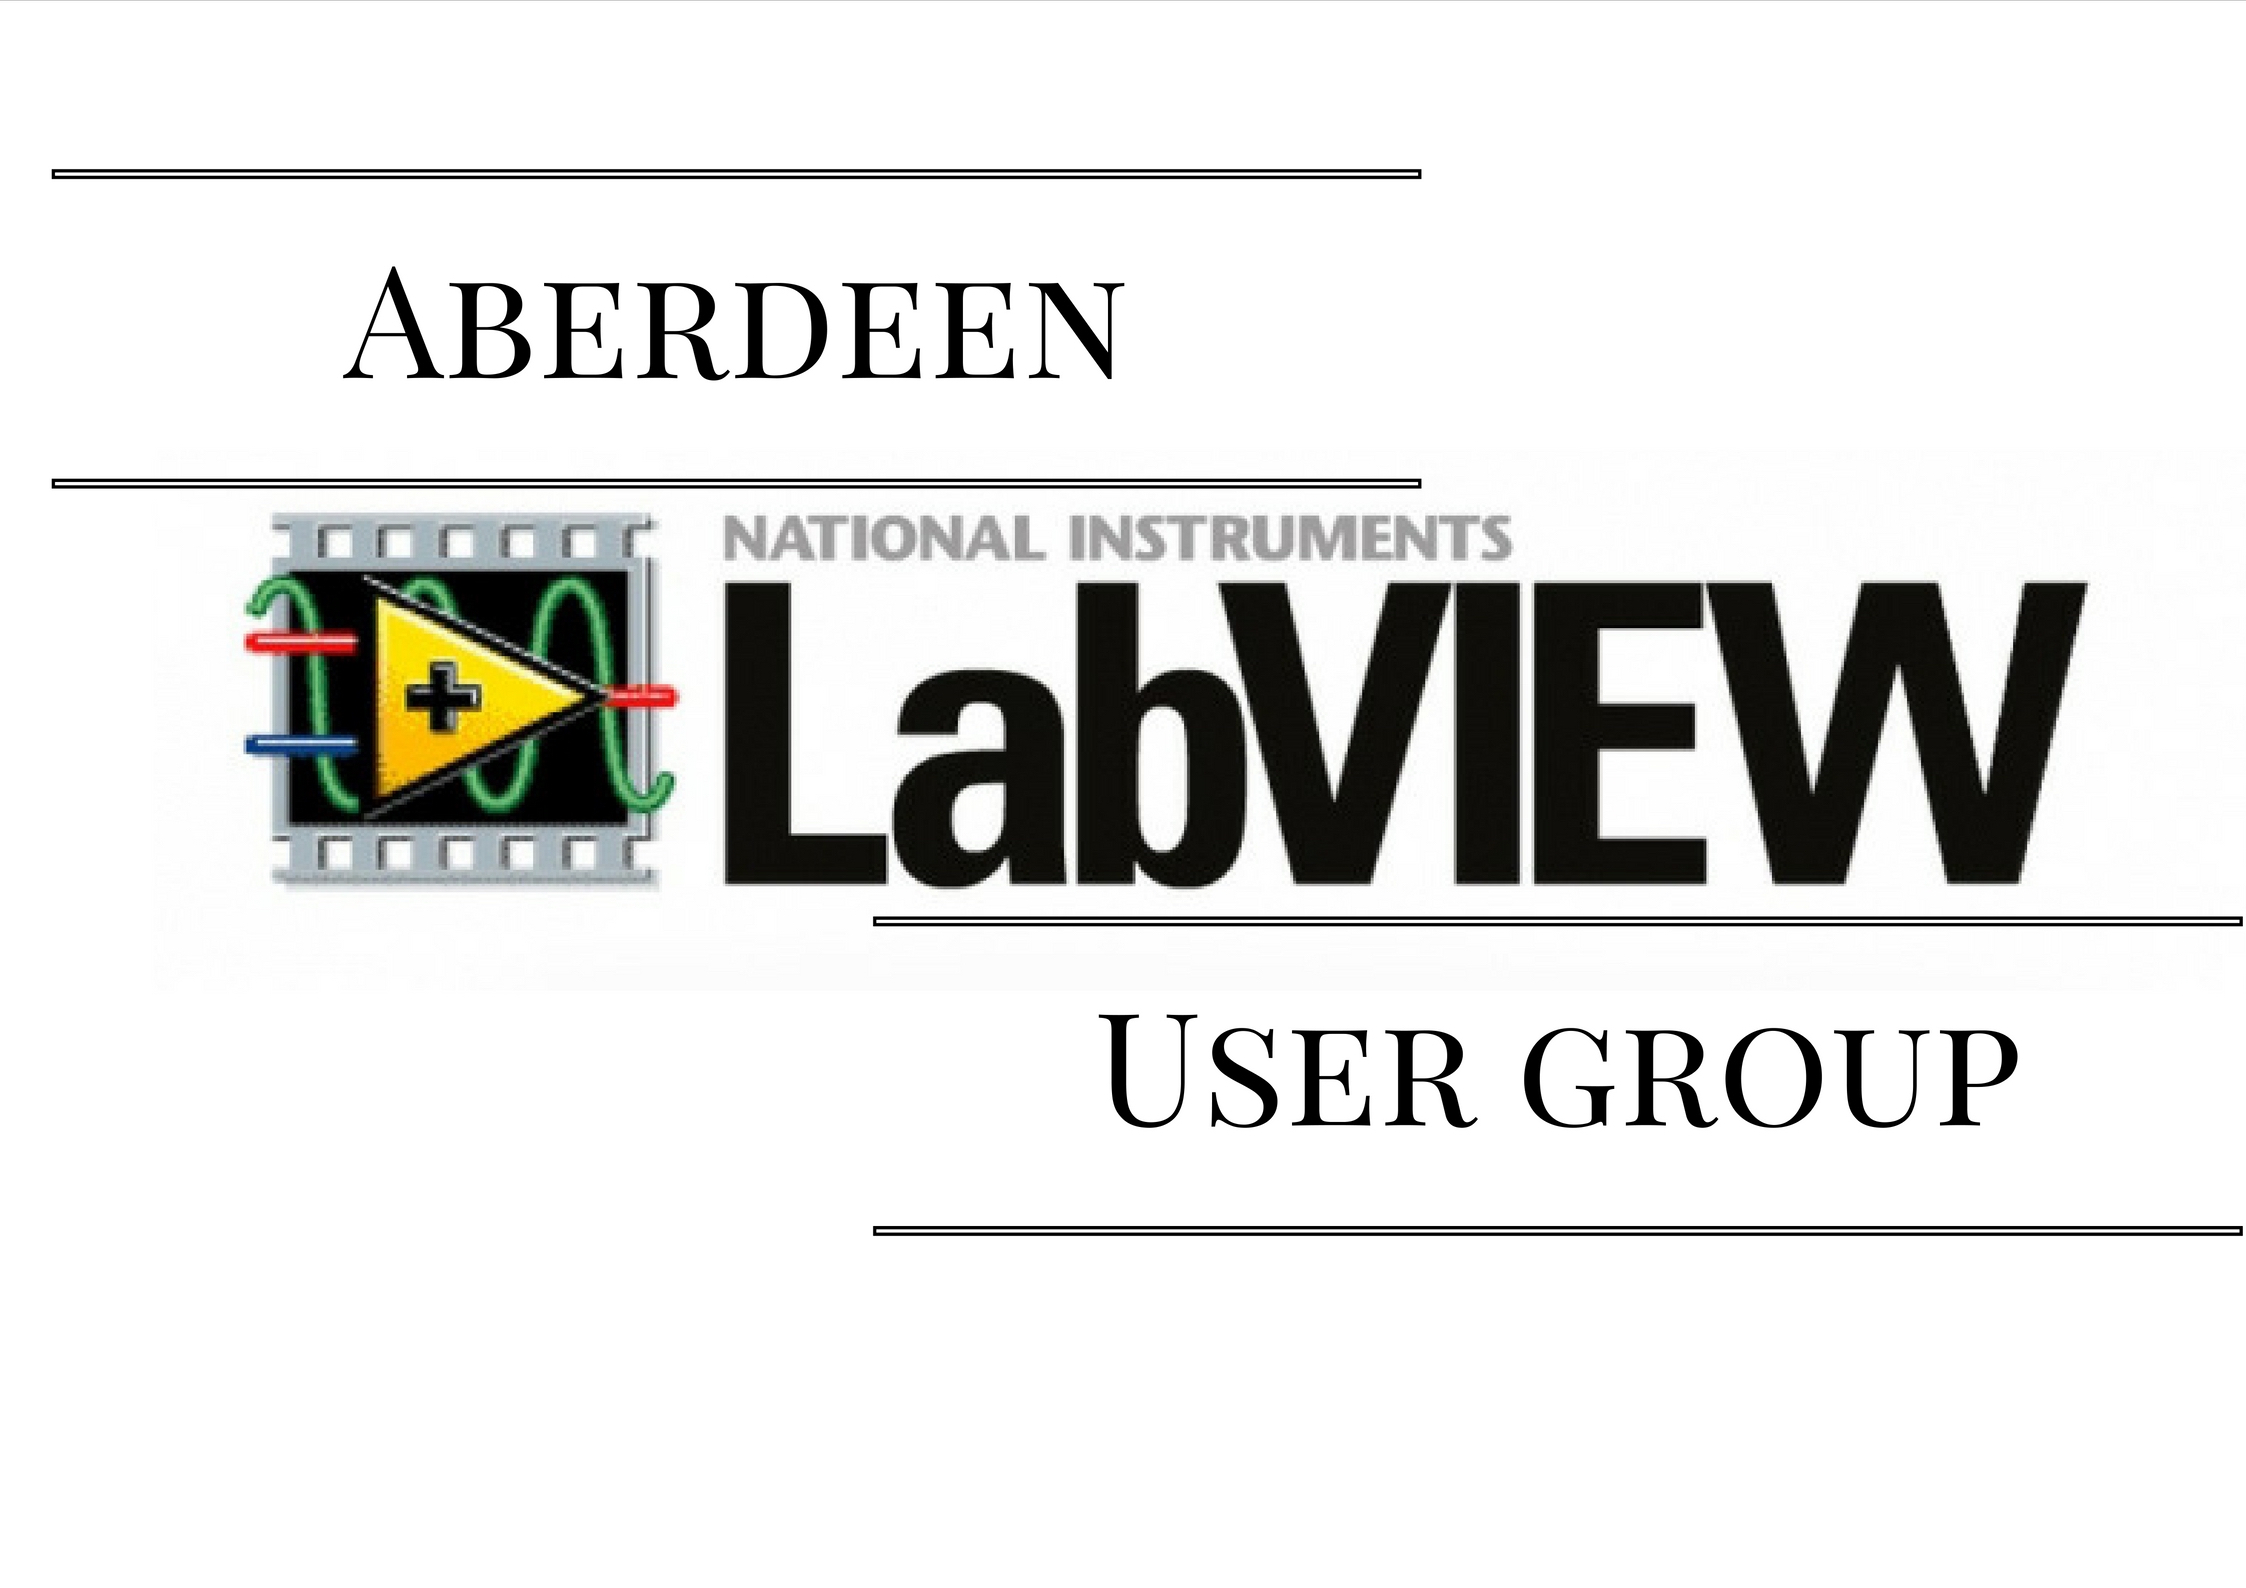 Aberdeen LabVIEW User Group – ALE Consultants